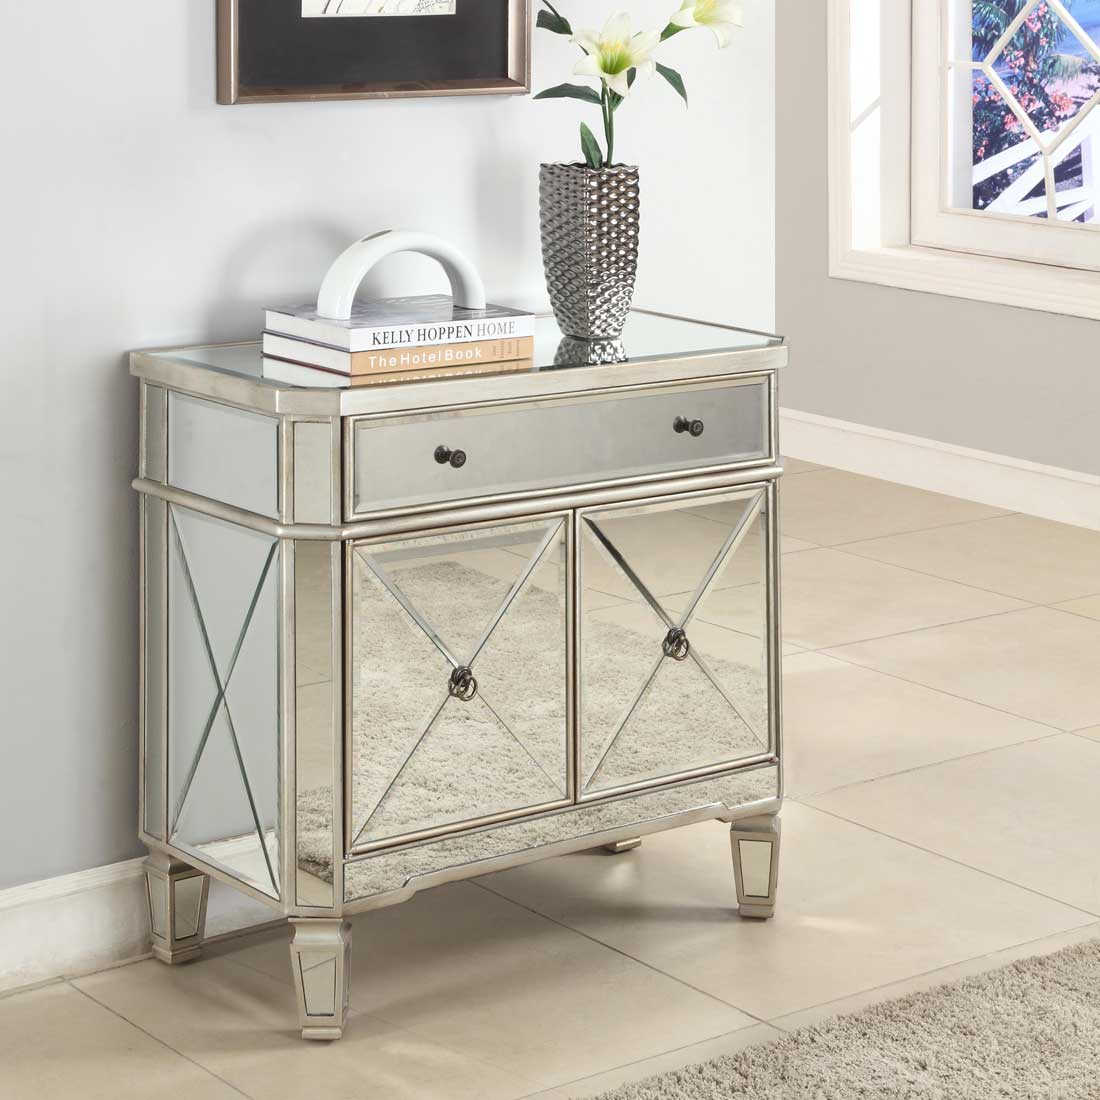 mirrored accent table fossil brewing design awesome with drawer nautical style chandeliers pier outdoor furniture natural wood wicker patio sets west elm free shipping coupon code